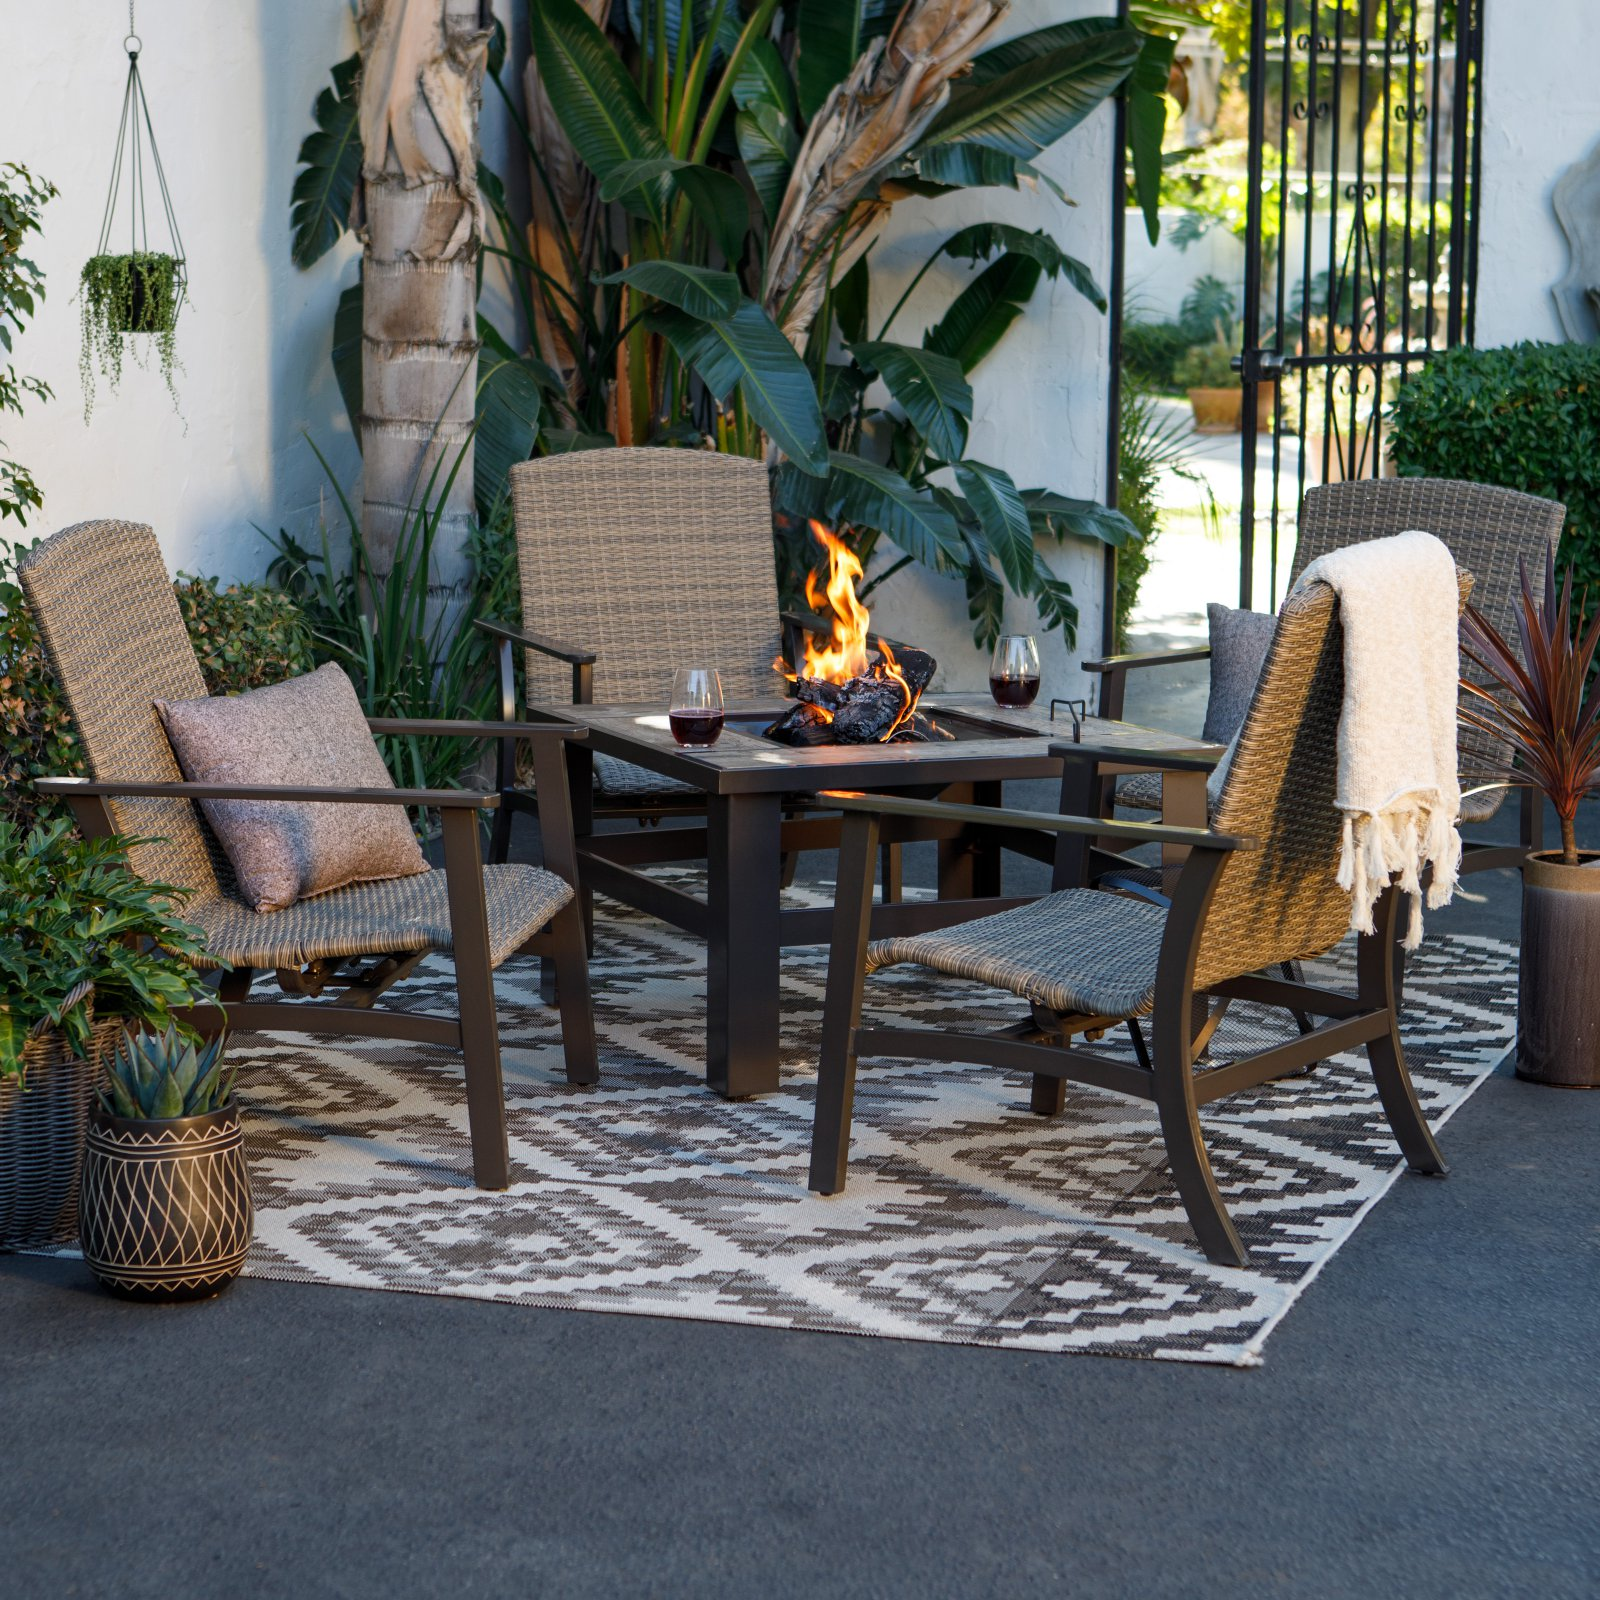 Coral Coast Tuscan Ridge Fire Pit Patio Set